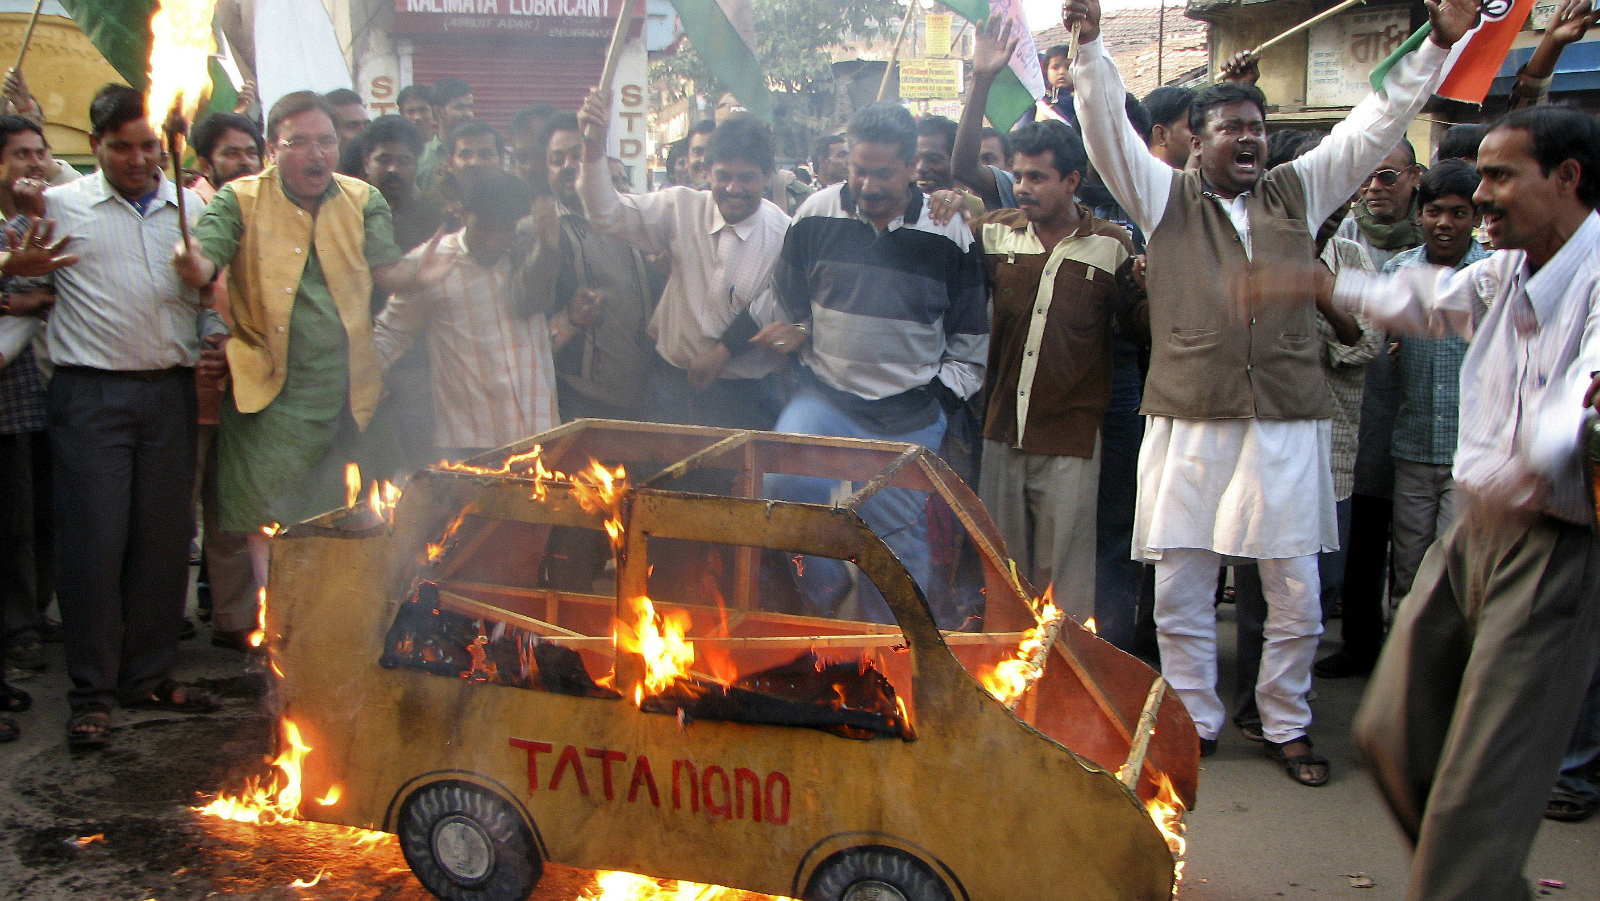 ** TO WITH INDIA TATA ** FILE ** In this Jan. 10, 2007 file photo, activists of Trinamul Congress and Bhumi Raksha Committee burn a replica of Tata Company's newly launched low cost car Nano, near its factory at Singur, about 30 kilometers (20 miles) northwest of Calcutta, India. The 141-year-old Tata company, India's oldest and largest conglomerate whose story is intertwined with that of modern India, is struggling to rally from a string of blows that have left the group drowning in condolence calls, not international applause.